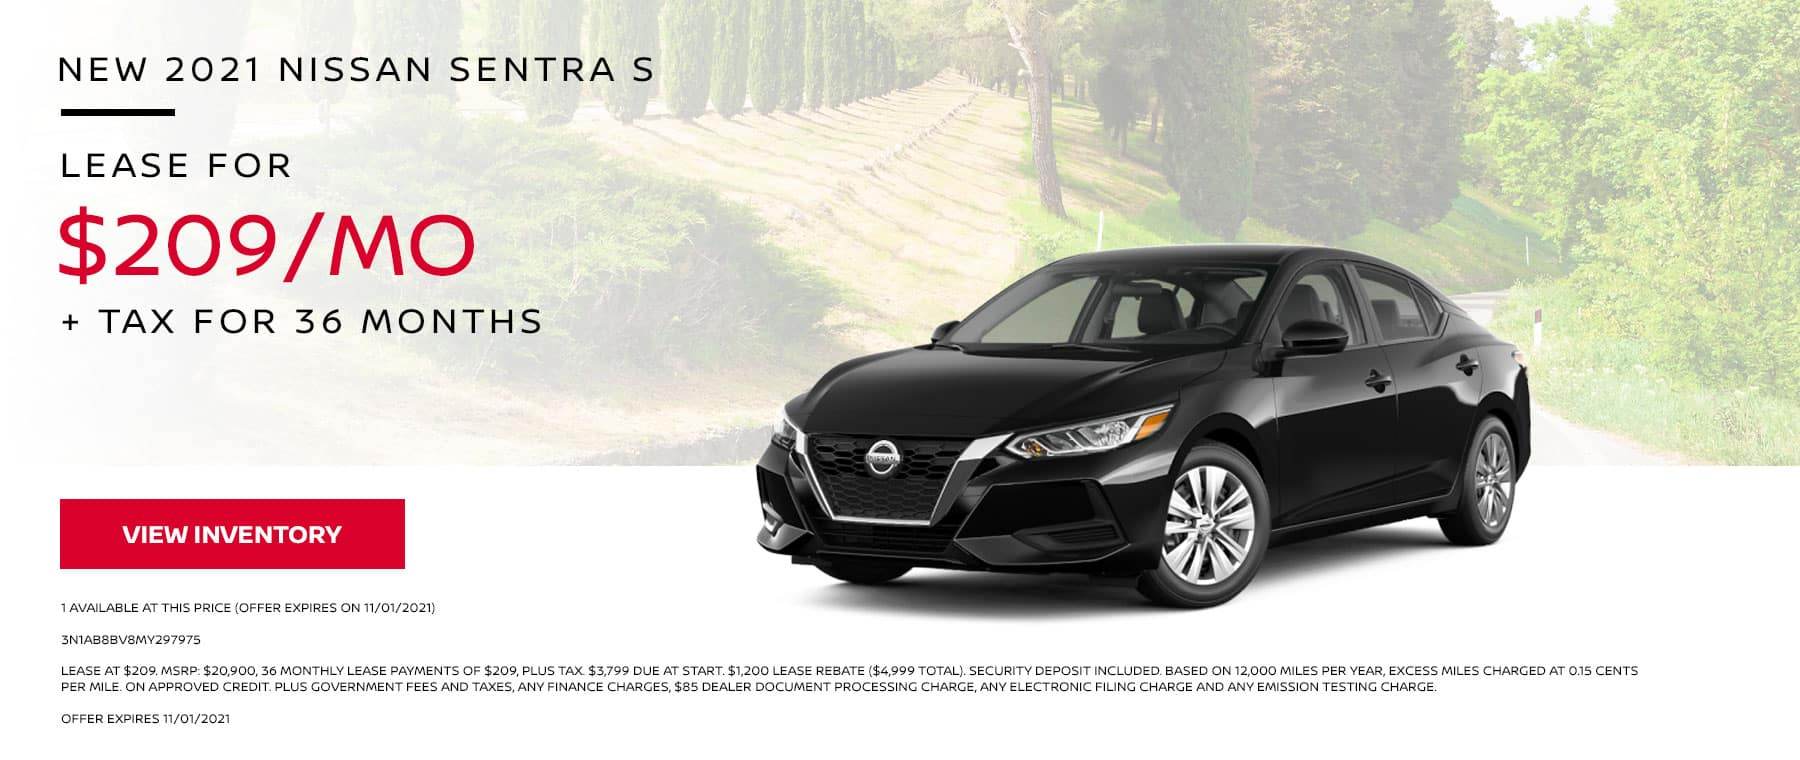 New 2021 Nissan Sentra S. Lease for $209 per Month + Tax for 36 Months